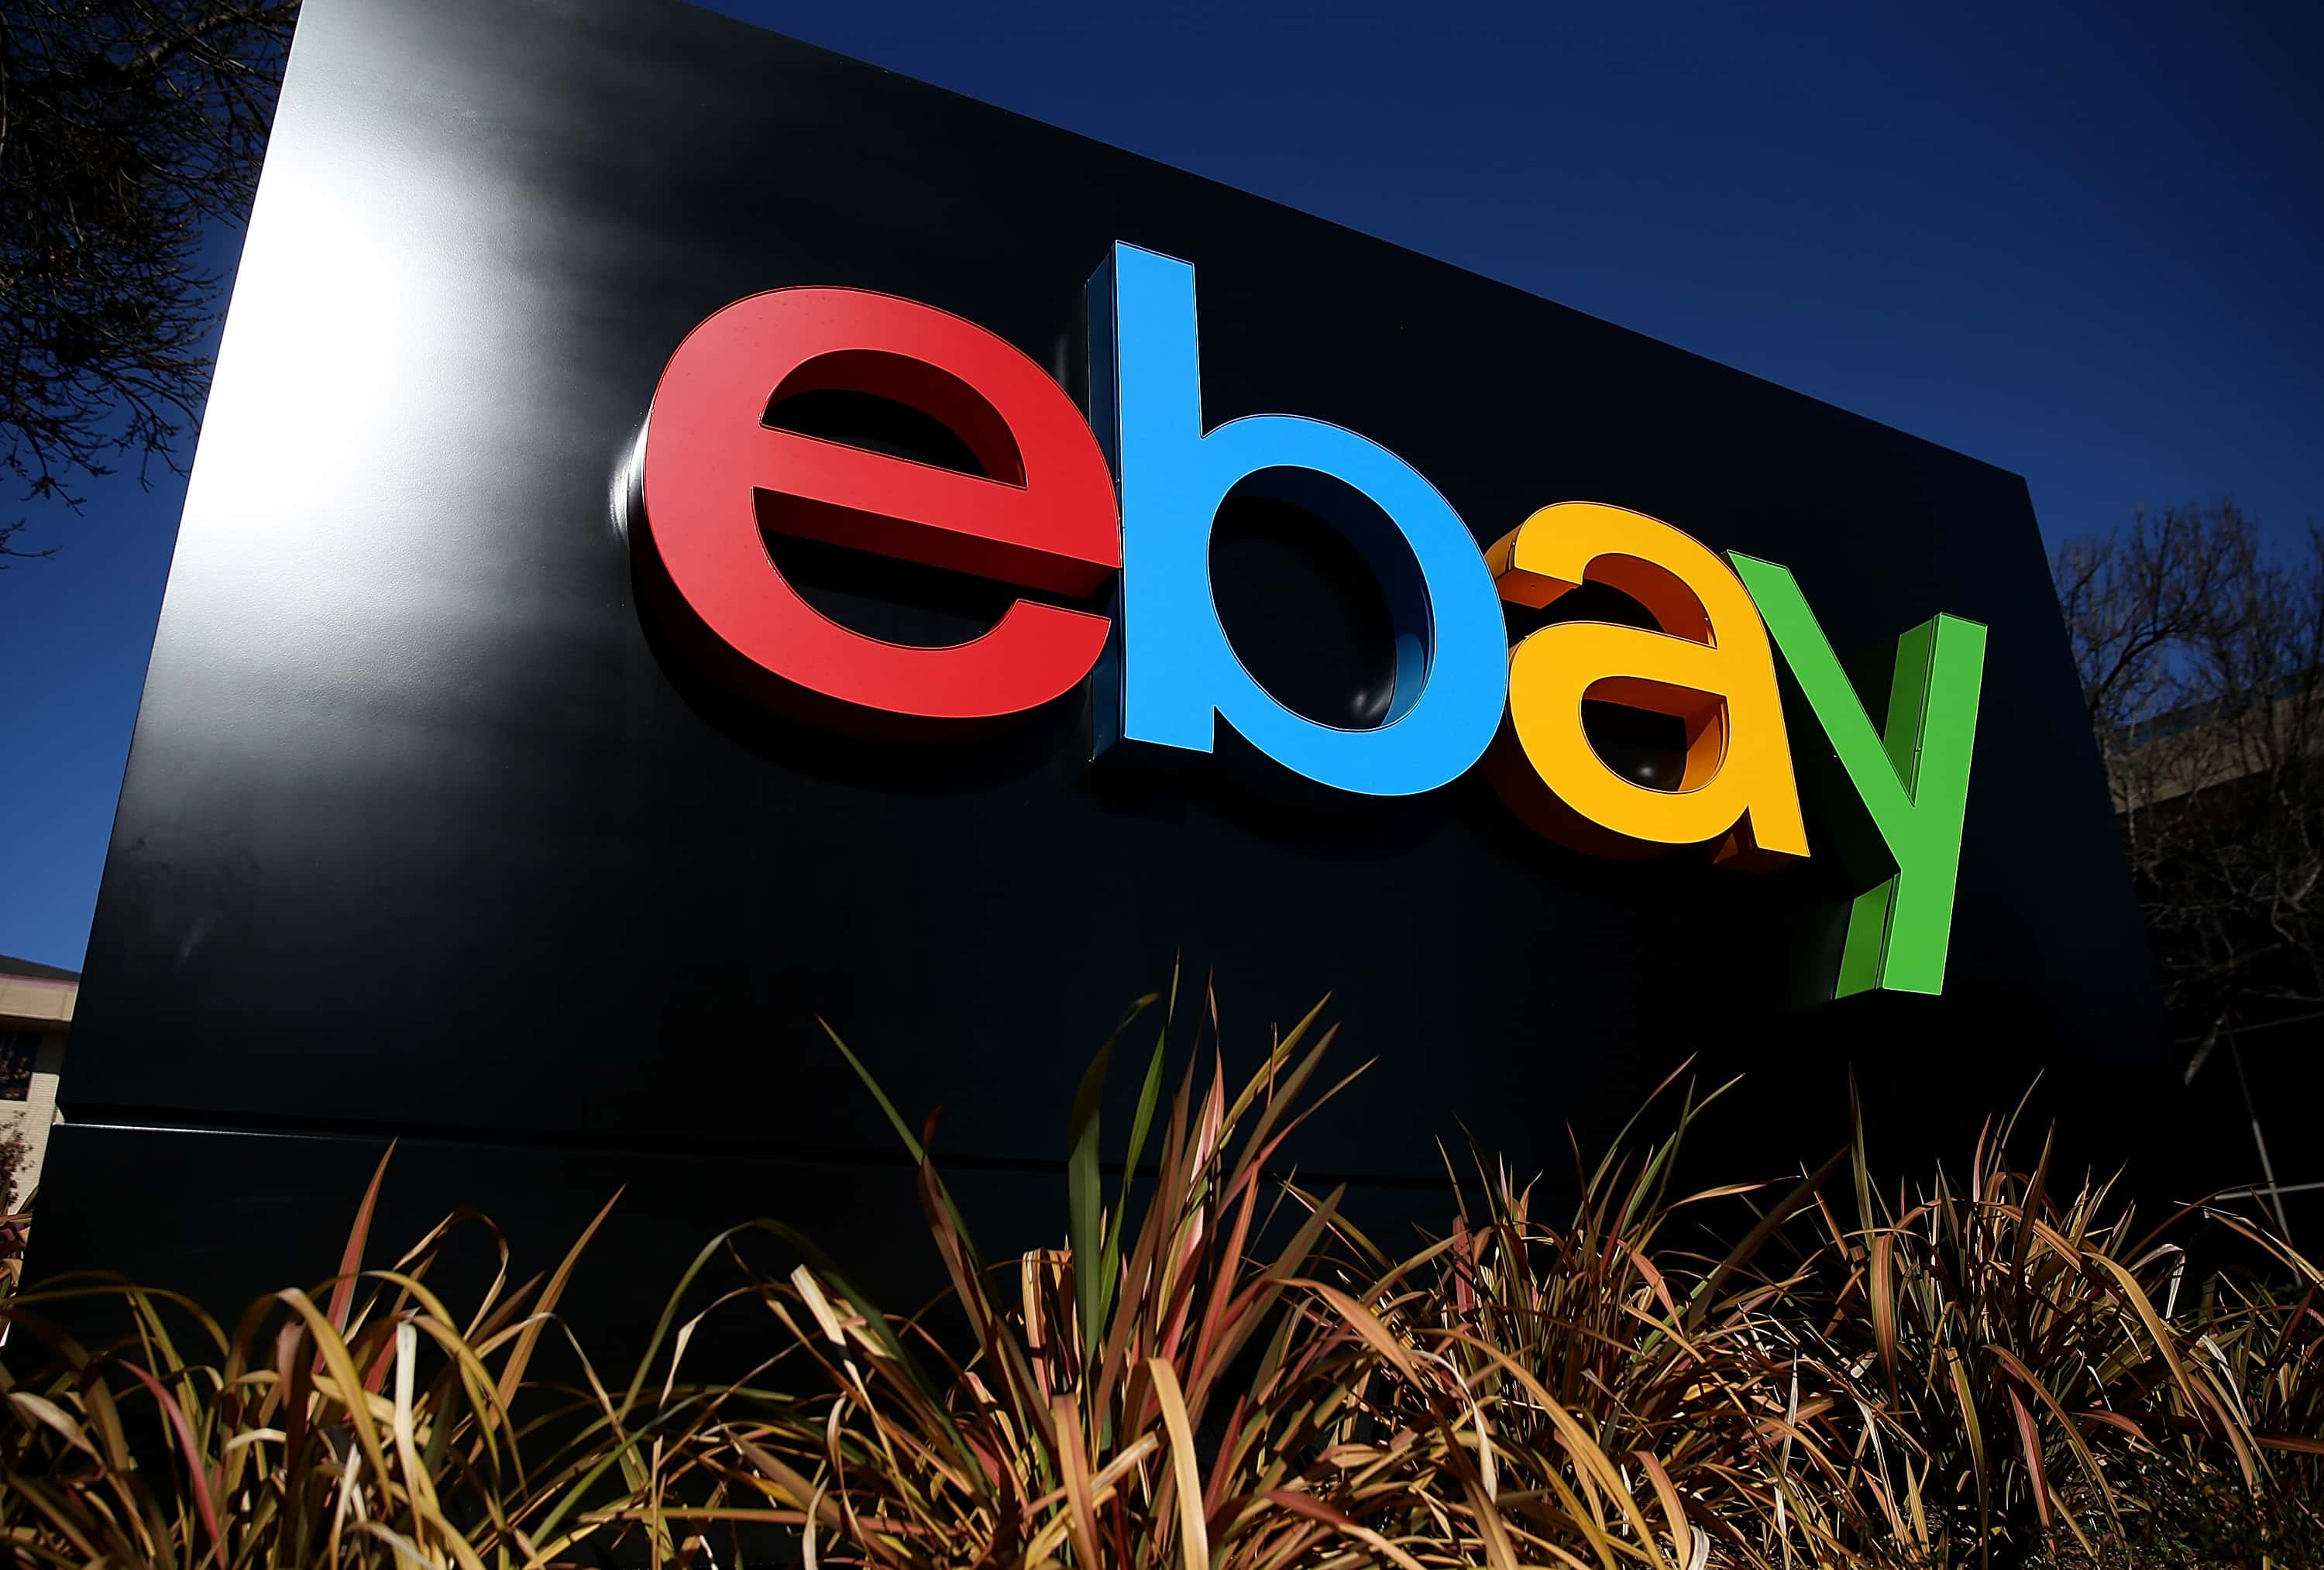 Indian sellers find market in US, Europe and Australia through ebay